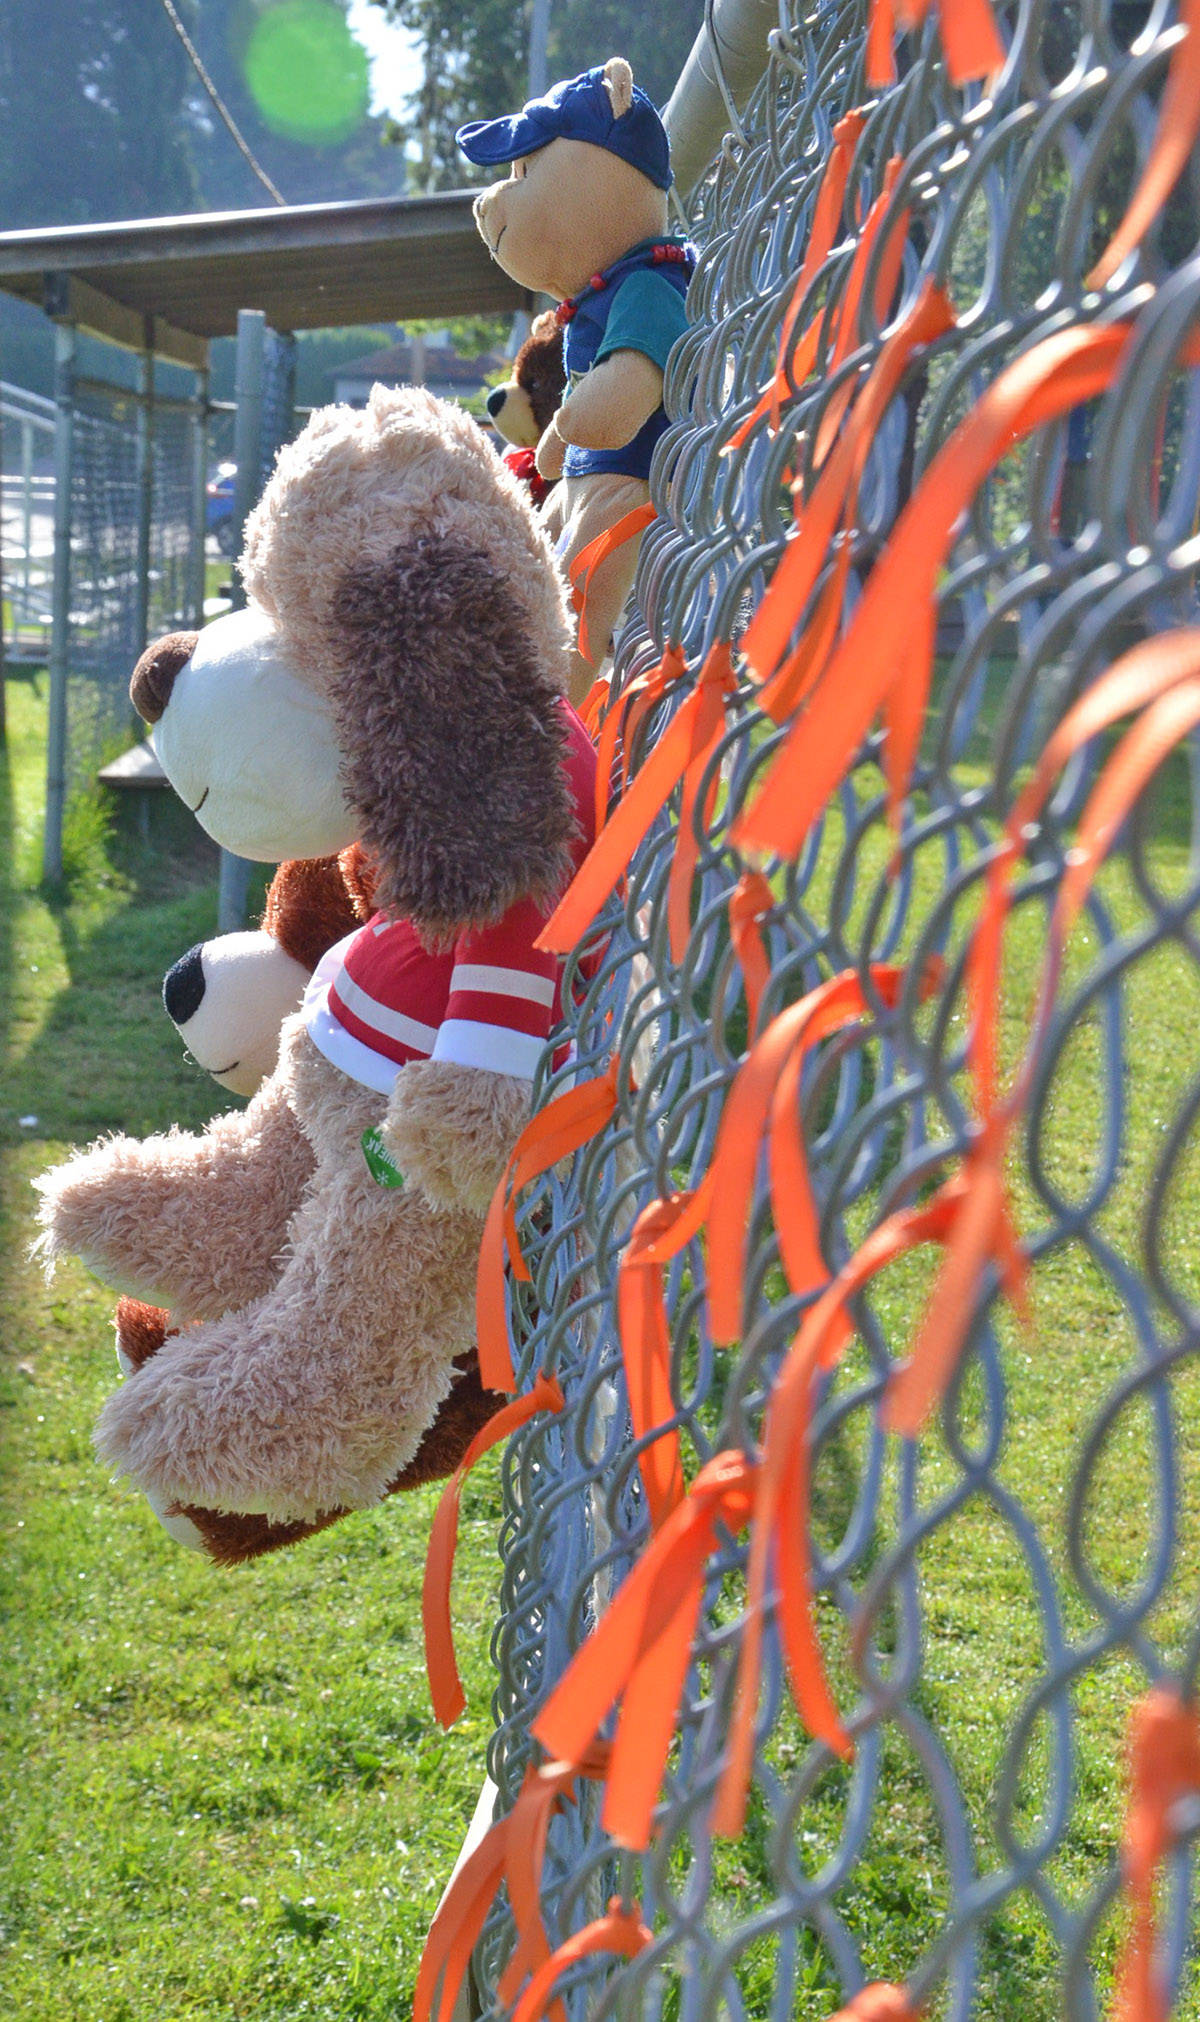 Stuffed toys and orange ribbons were put on a fence at Langley City's Conder Park on the last weekend of May 2021 as a memorial to the 215 dead children at the Kamloops residential school. (Heather Colpitts/Langley Advance Times)